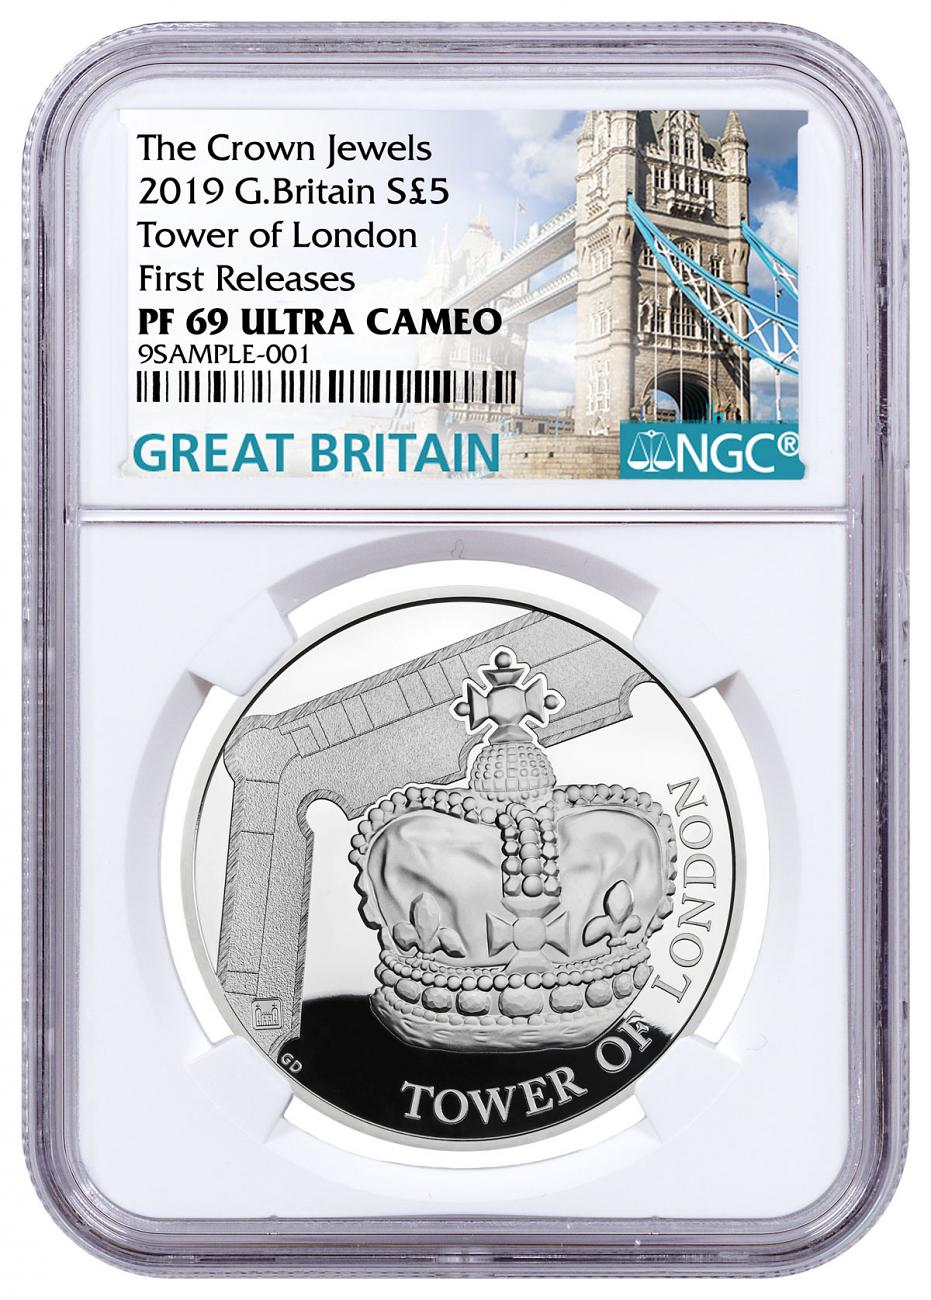 2019 Great Britain Tower of London - Crown Jewels Silver Proof £5 Coin NGC PF69 UC FR Tower Bridge Label